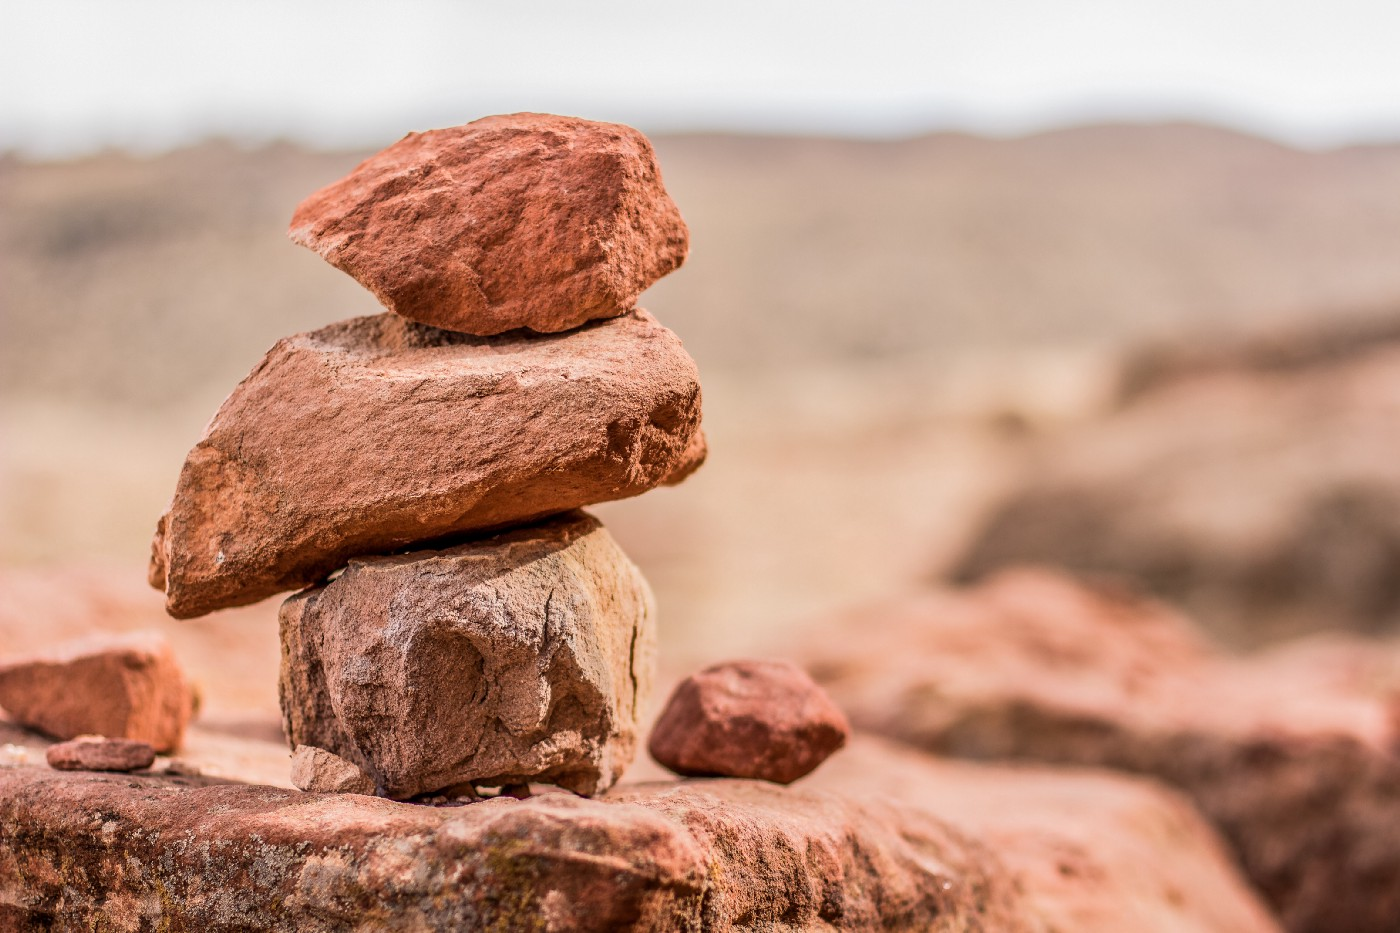 Three red rocks stacked on top of one another in a desert enviroment.